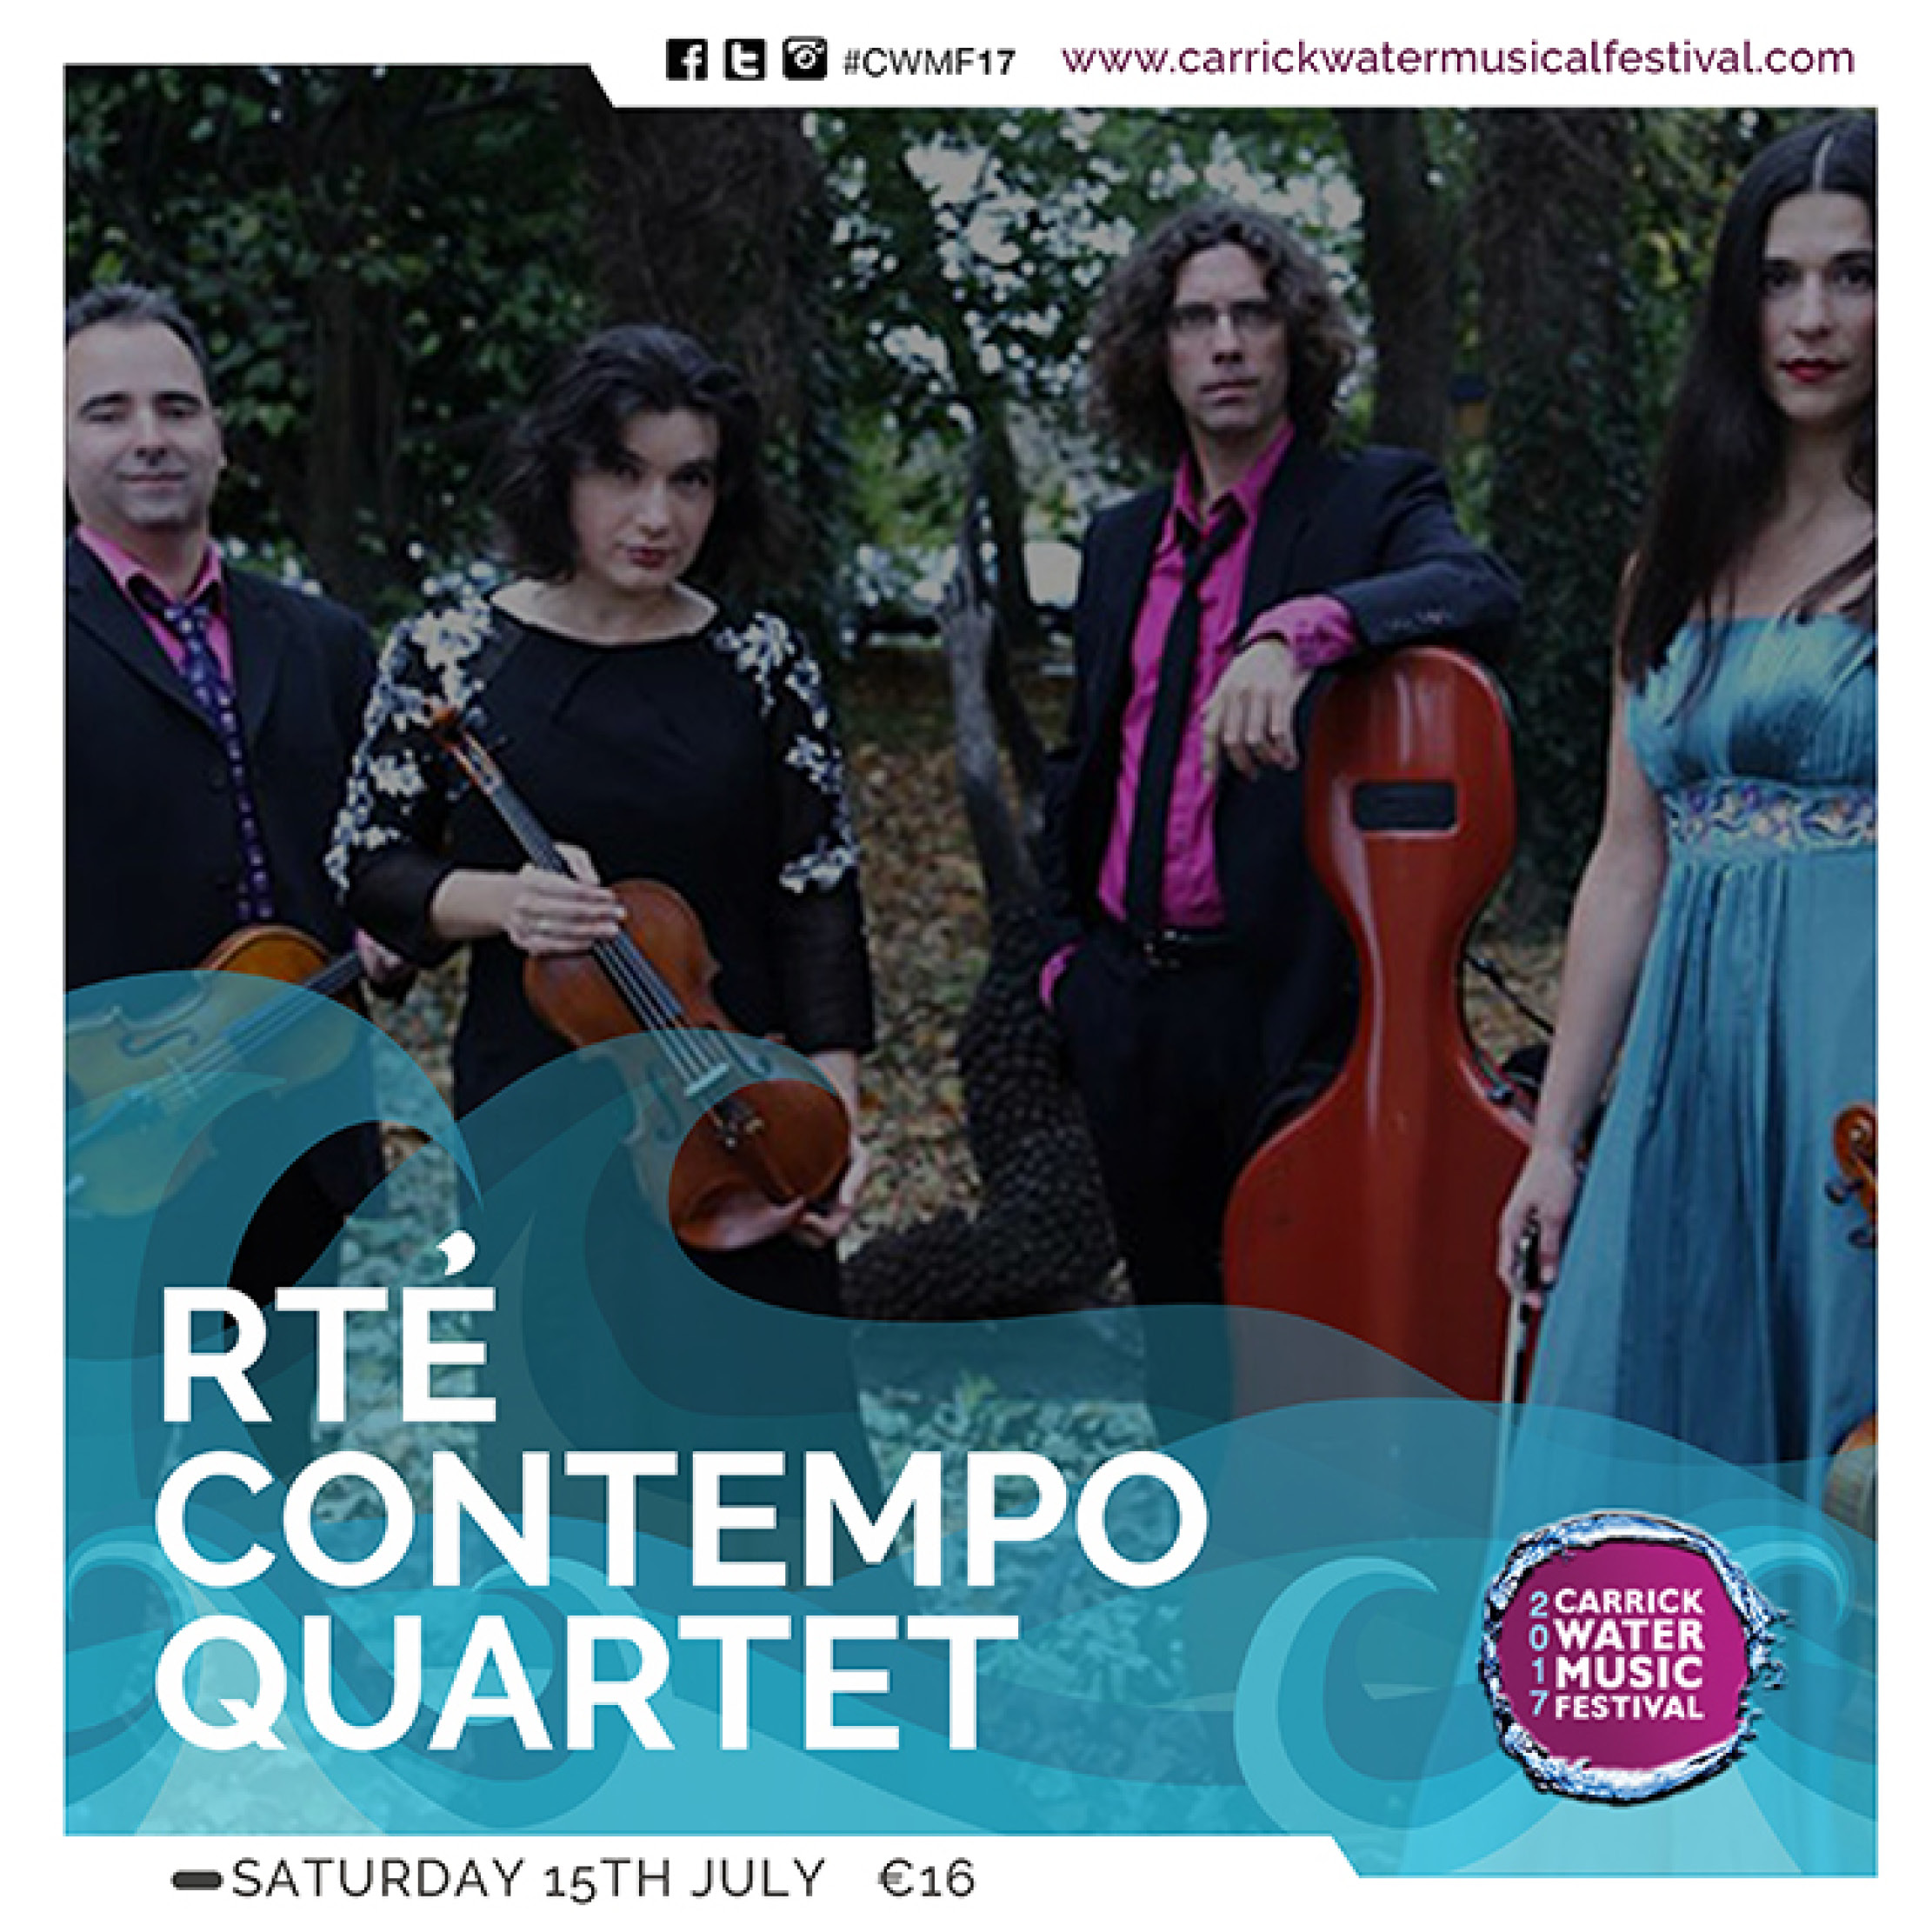 RTÉ ConTempo Quartet